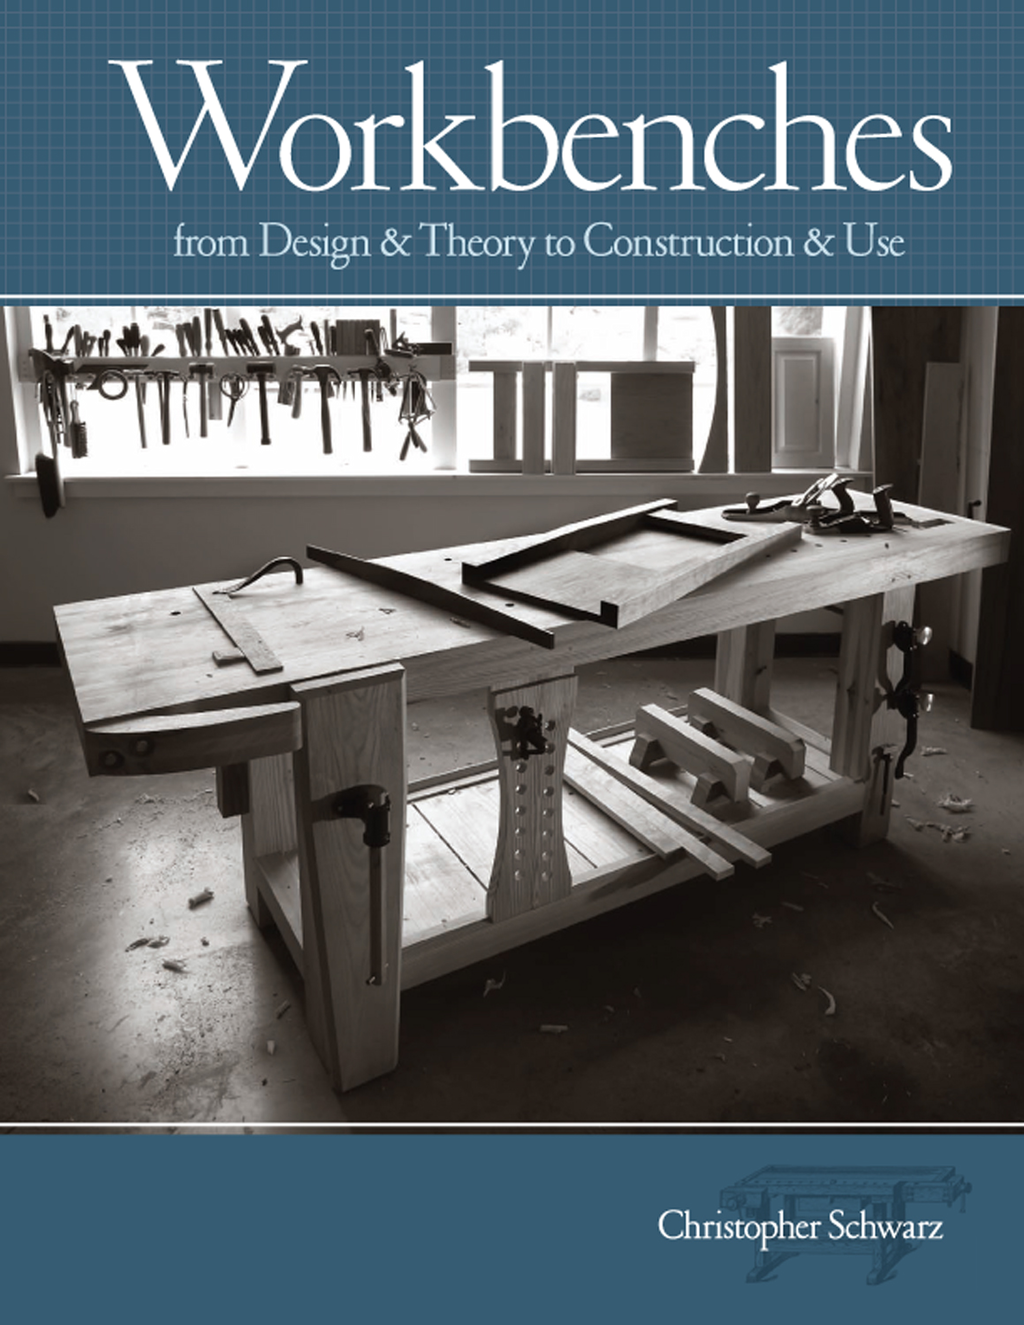 Workbenches By: Christopher Schwarz